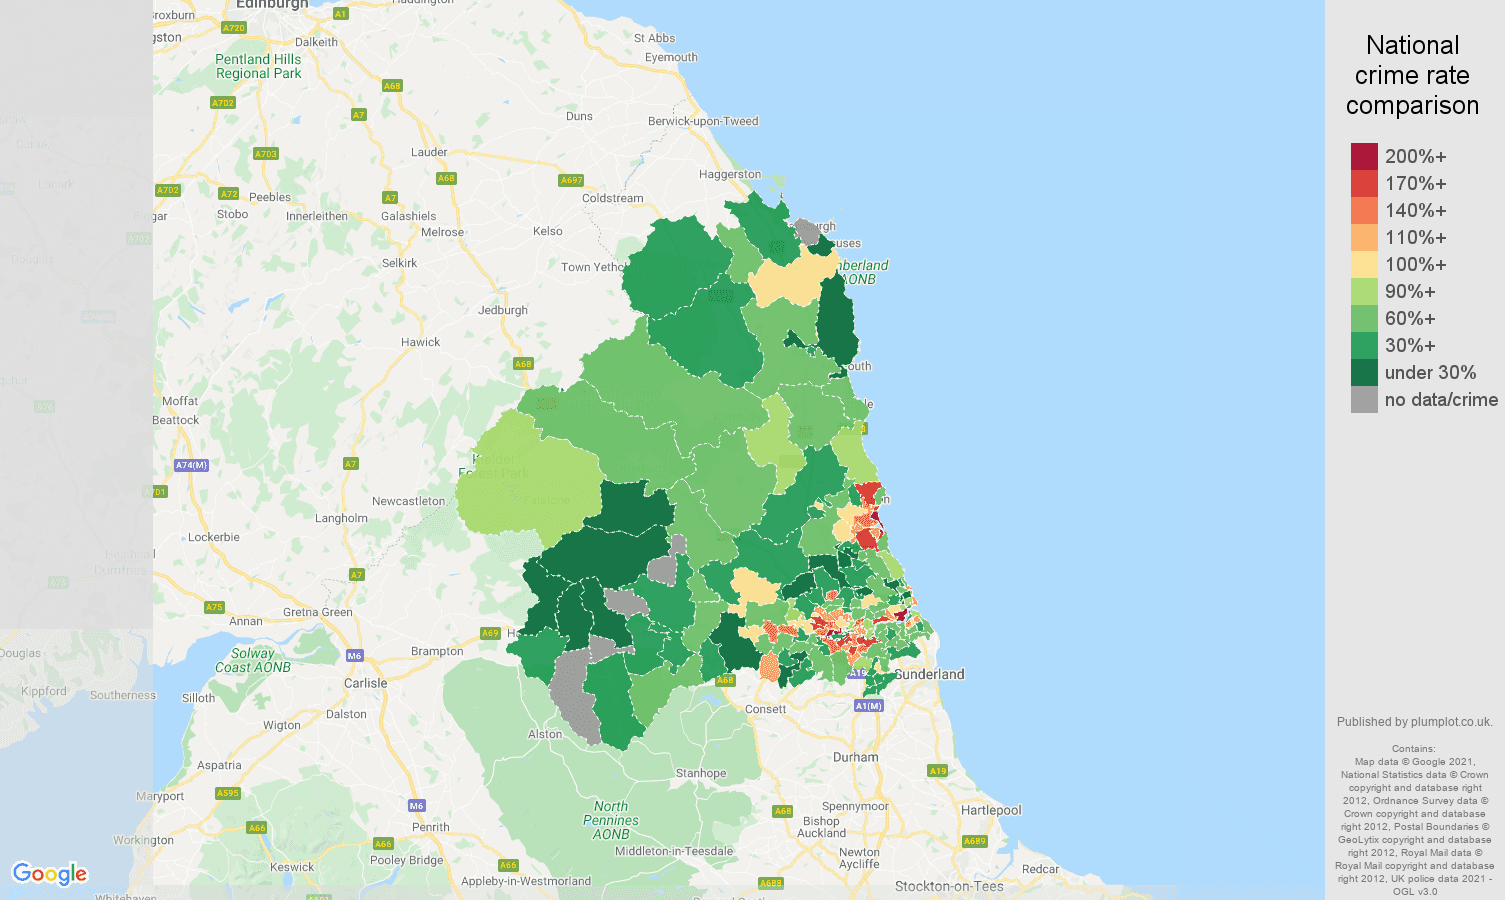 Newcastle upon Tyne burglary crime rate comparison map